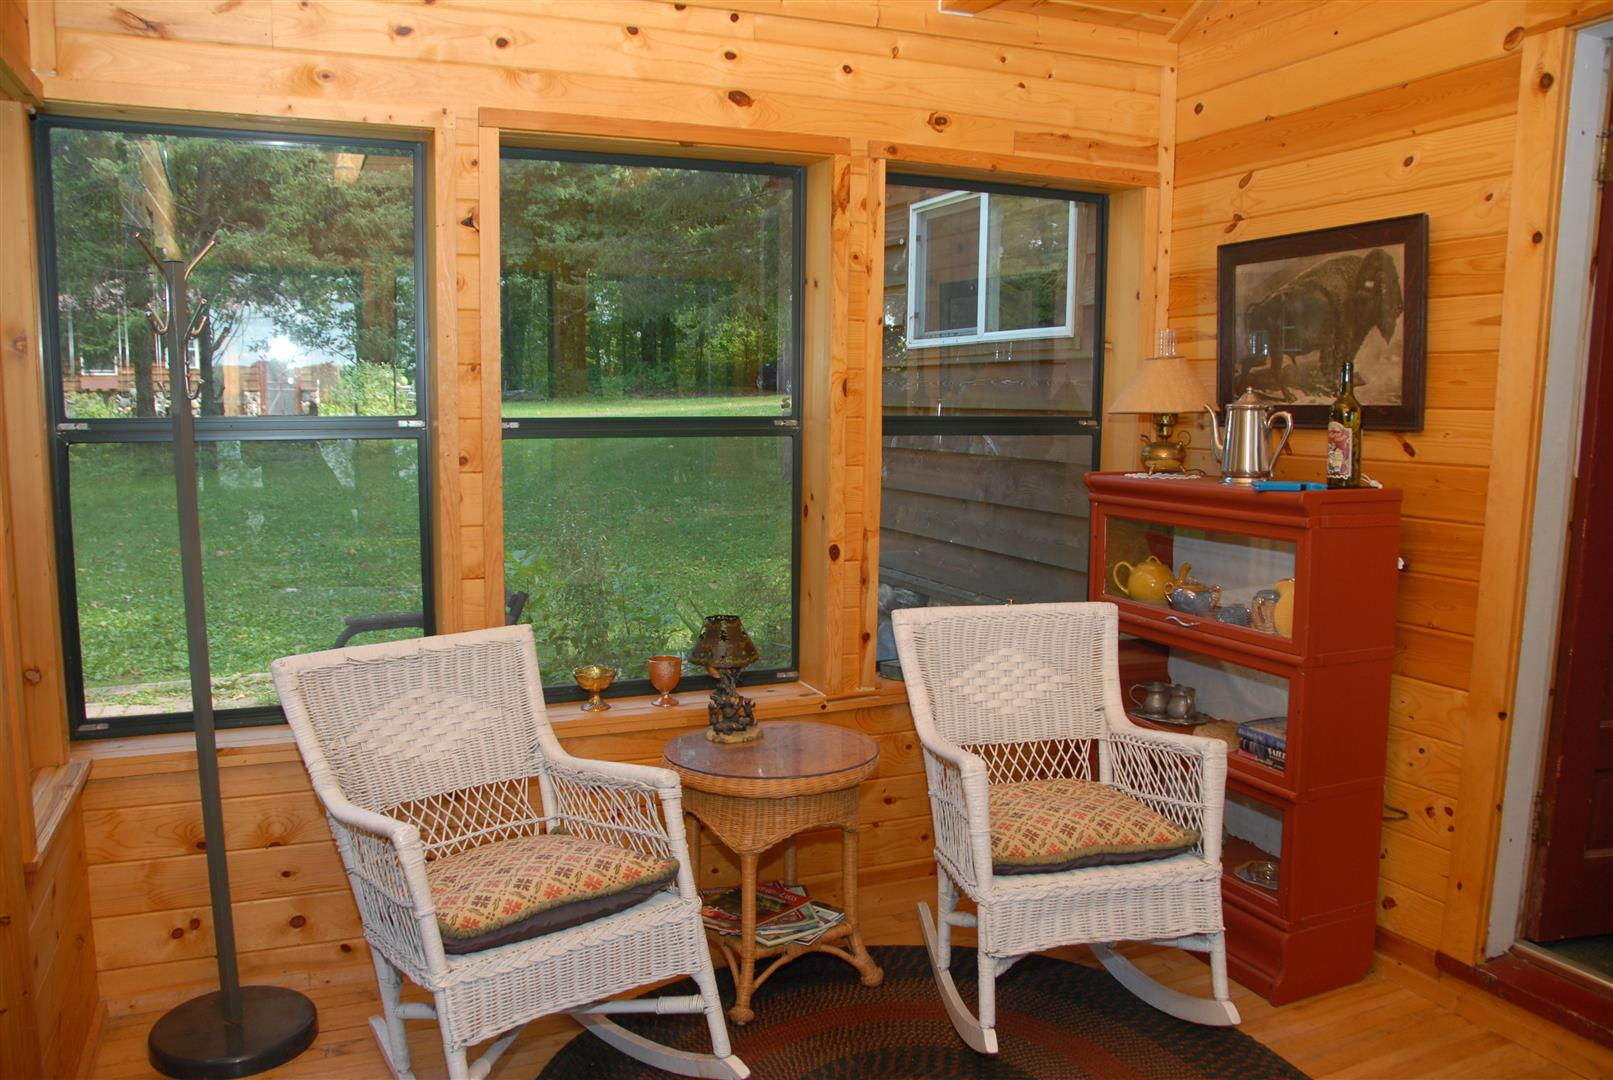 Rocking chairs on enclosed porch